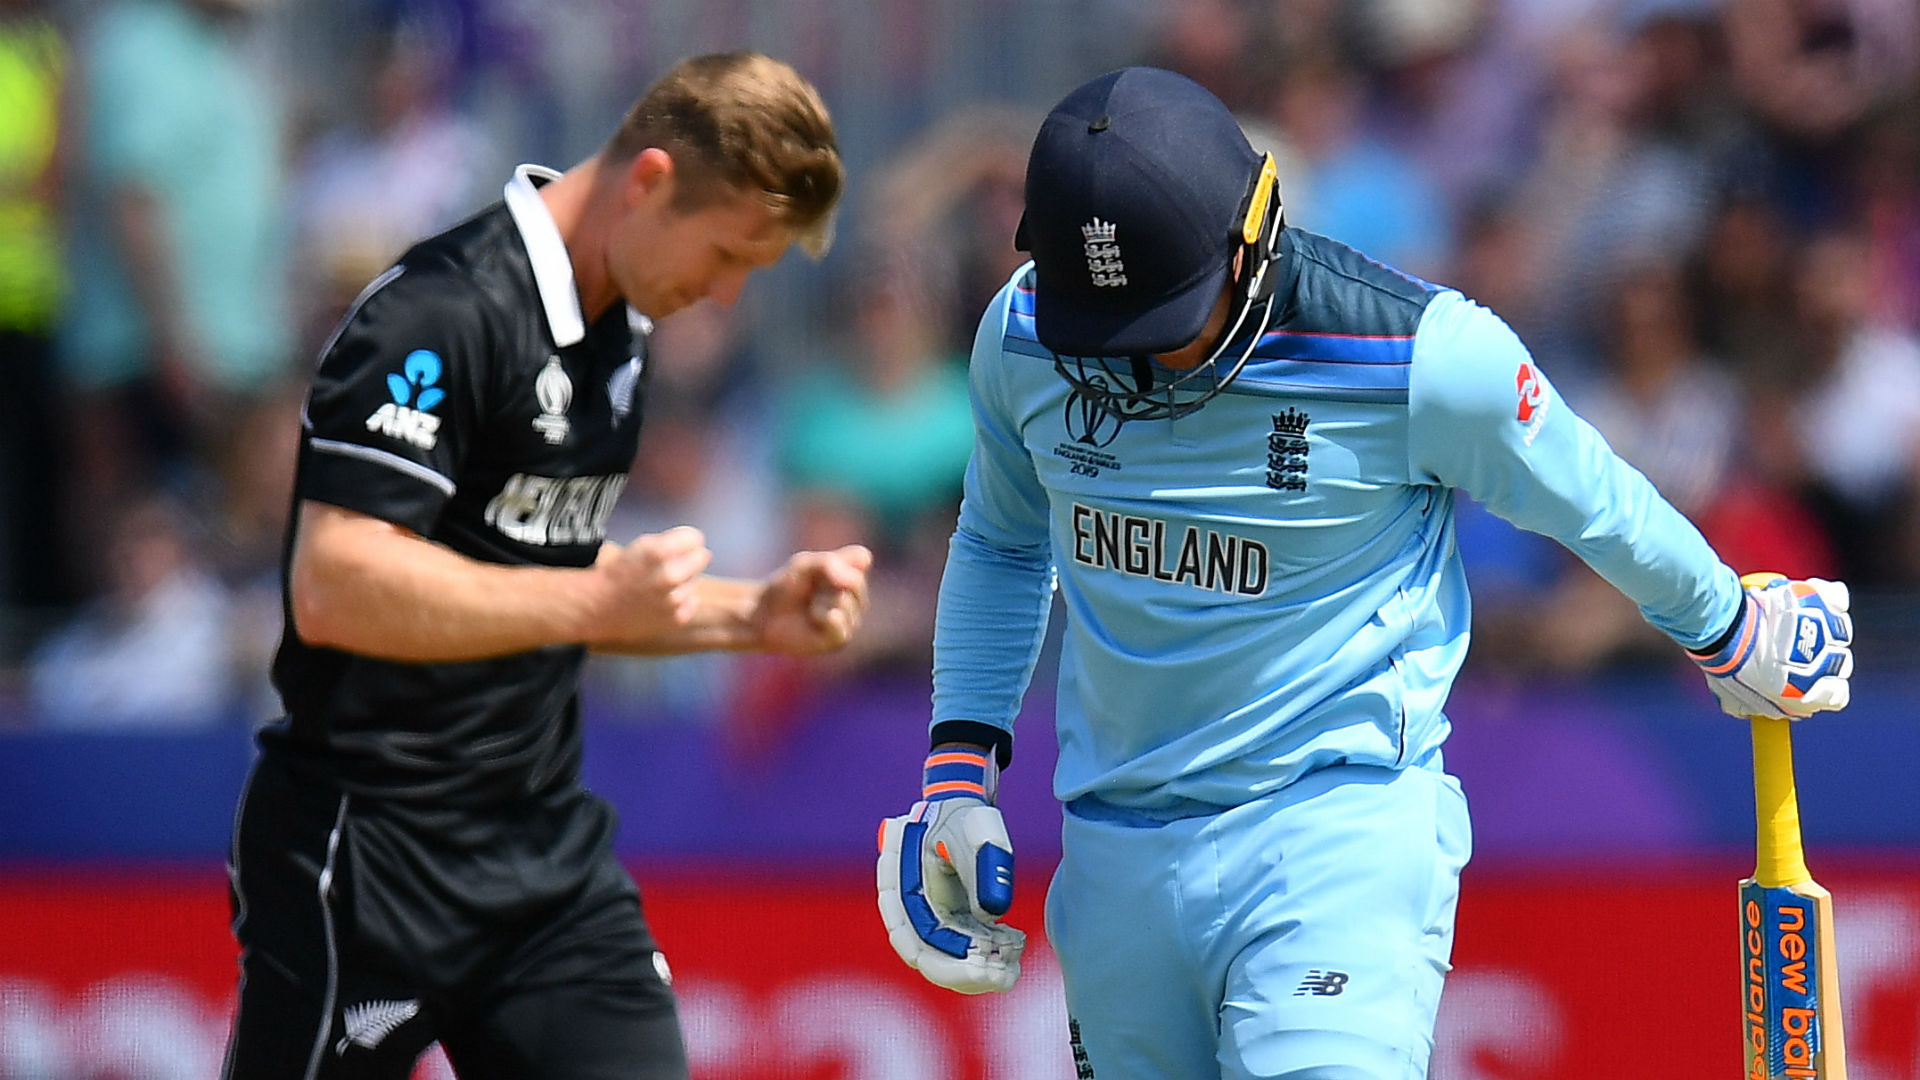 Cricket World Cup 2019: England's final with New Zealand in Opta numbers